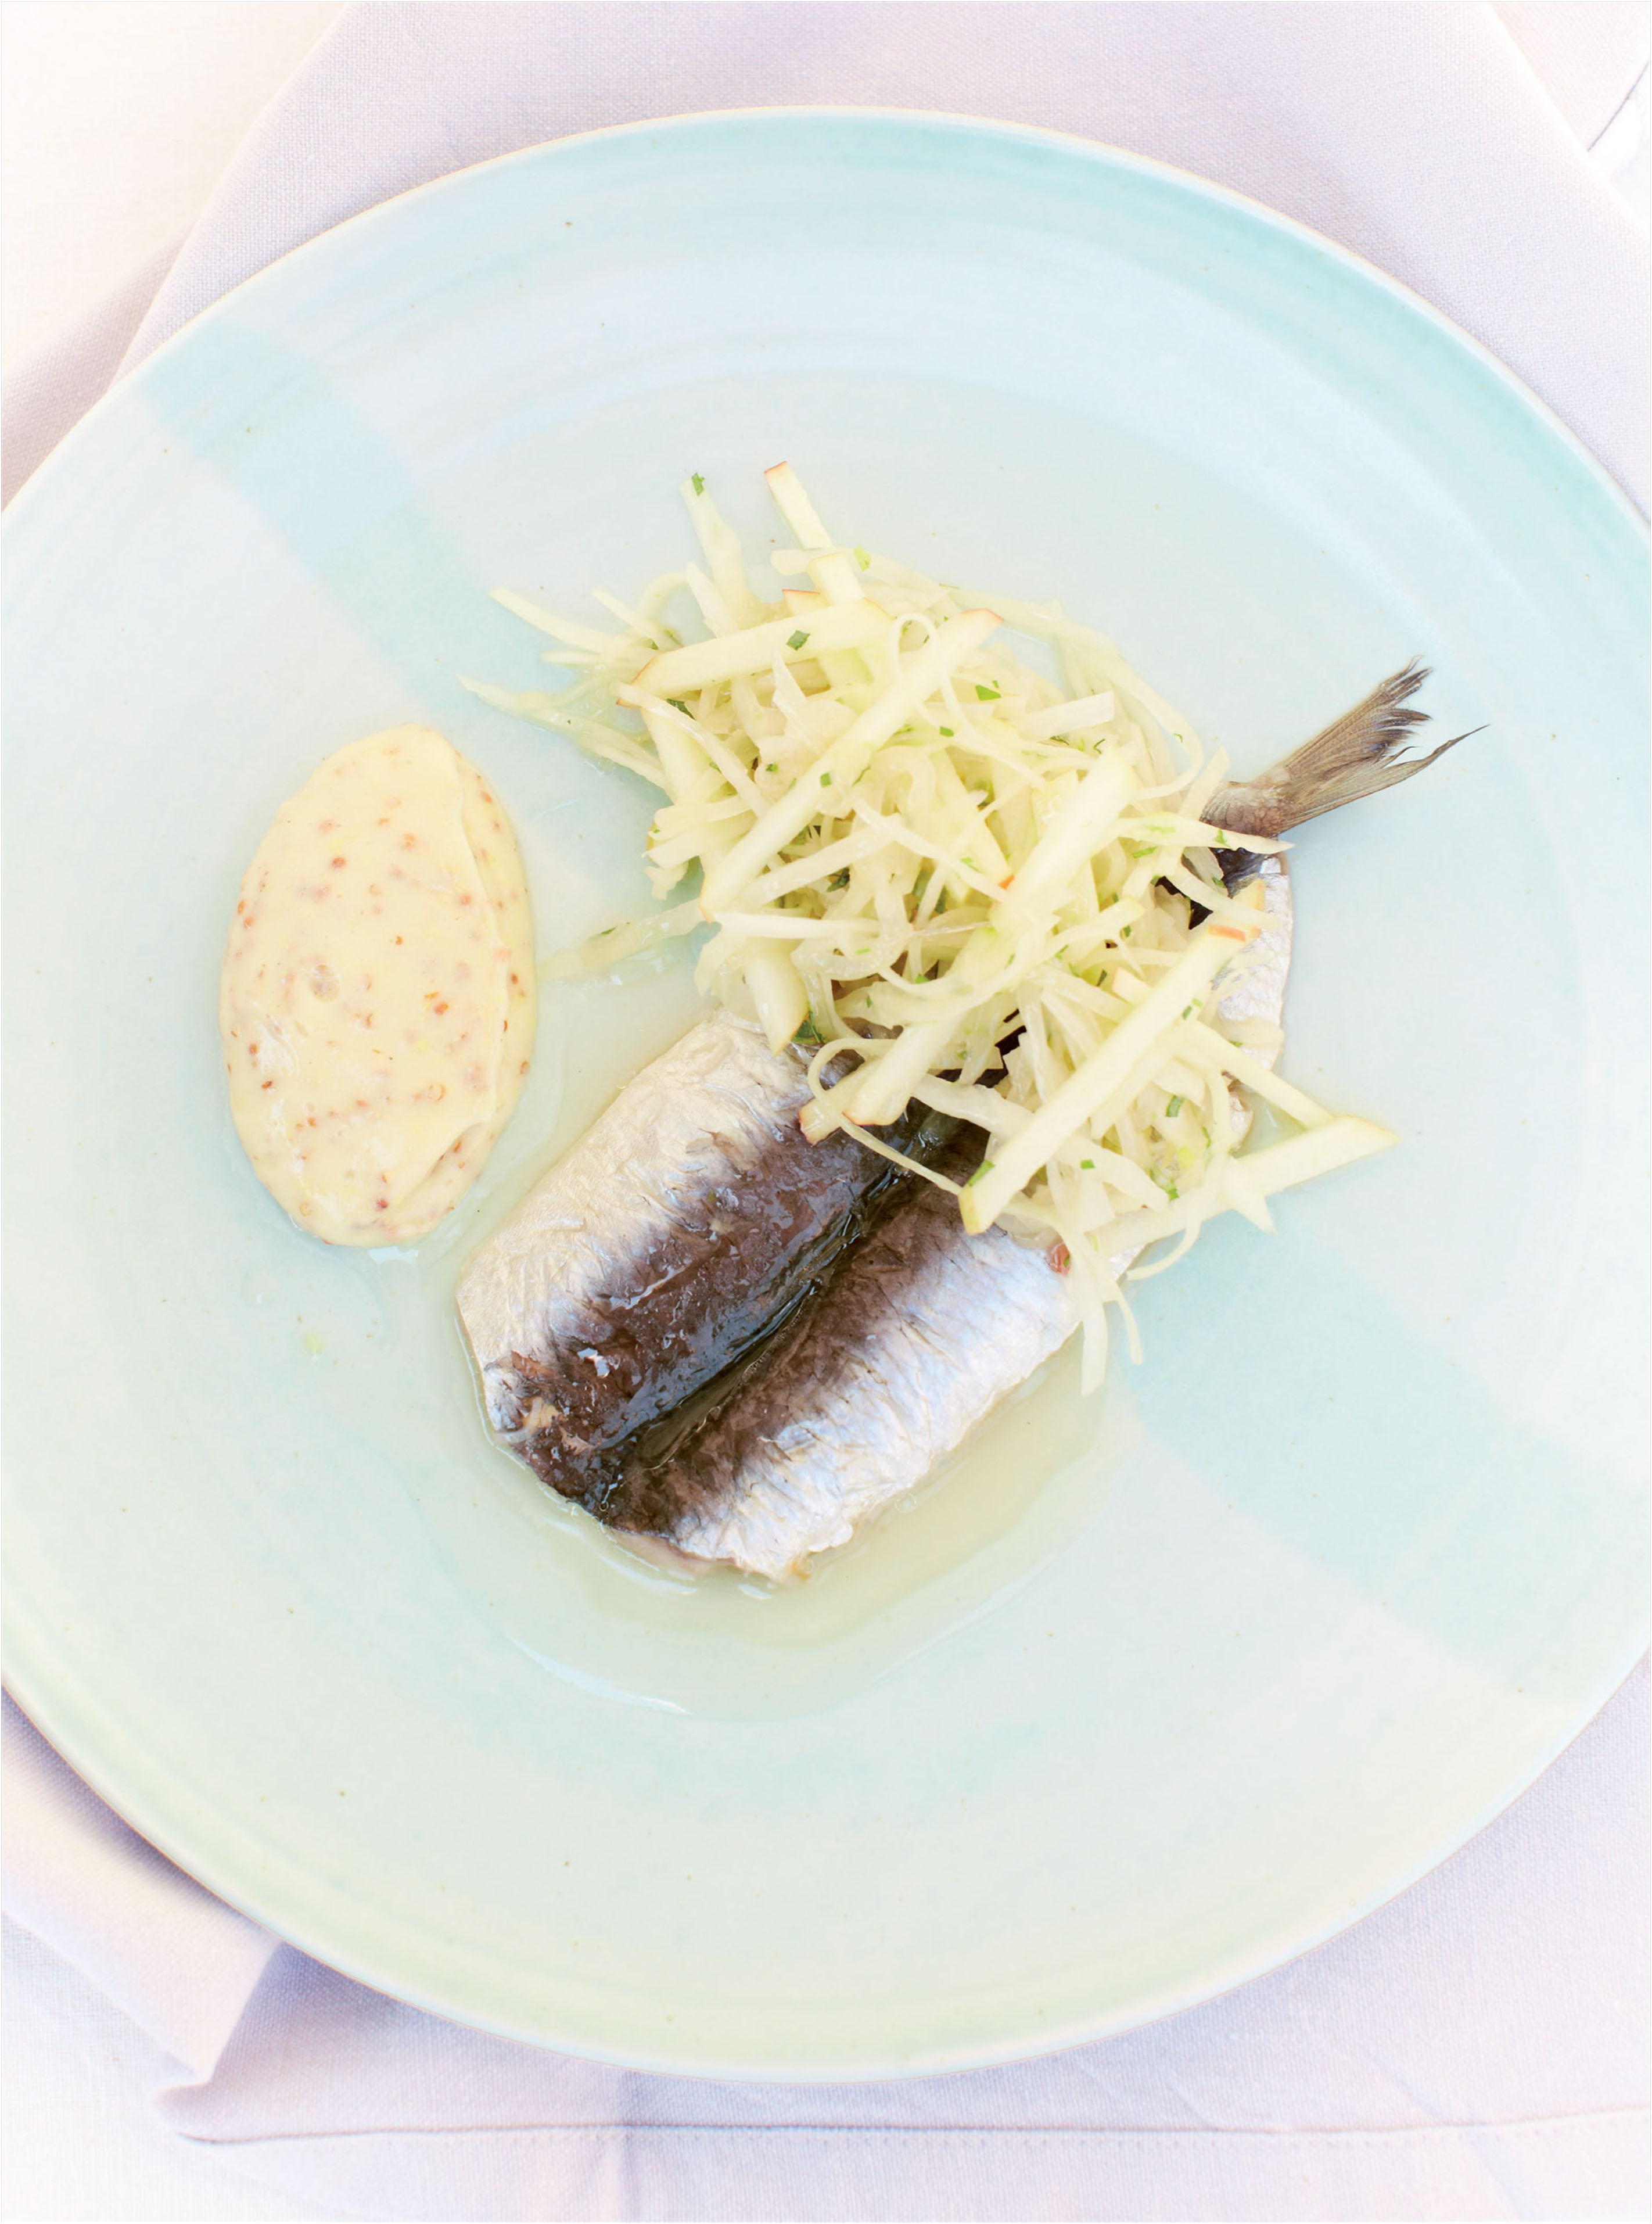 Soused sardines with white cabbage and mustard